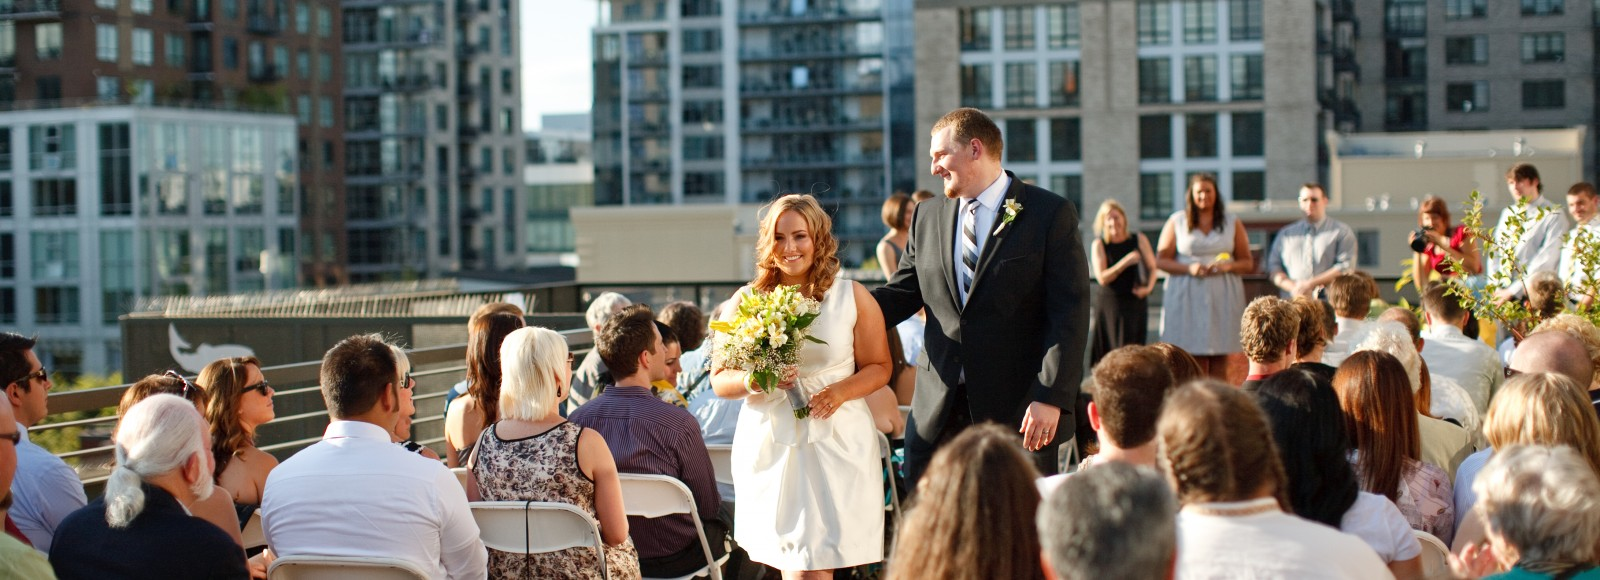 Wedding on the Ecotrust terrace. Bride and groom walk down the aisle. Friends and family on either side.